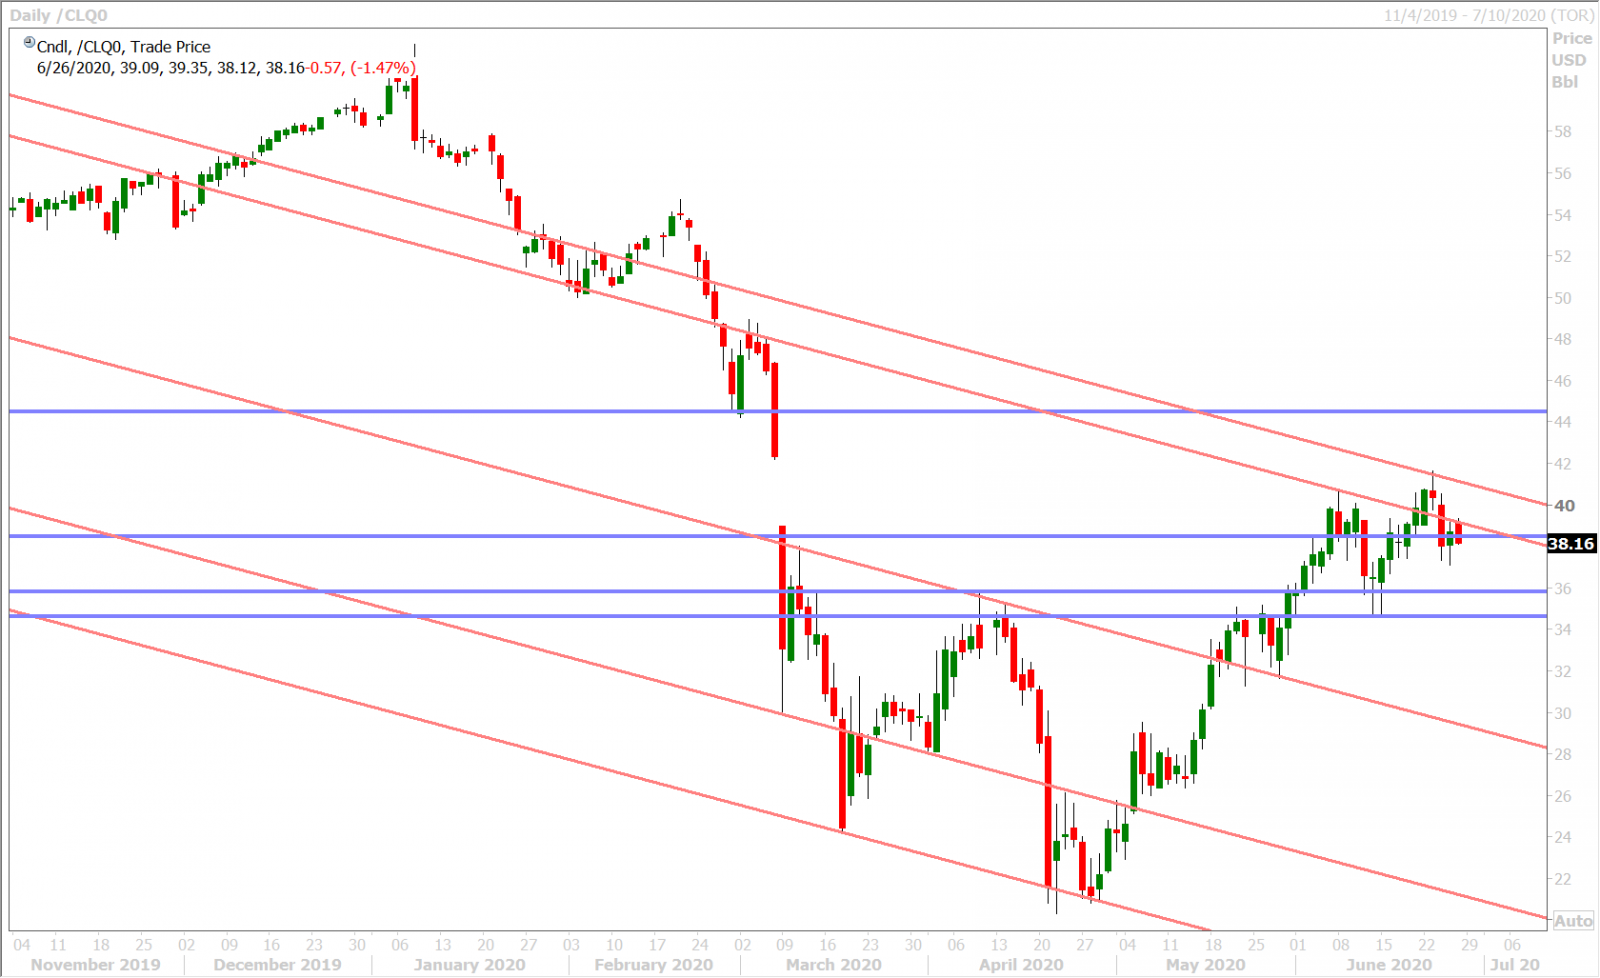 AUGUST CRUDE OIL DAILY